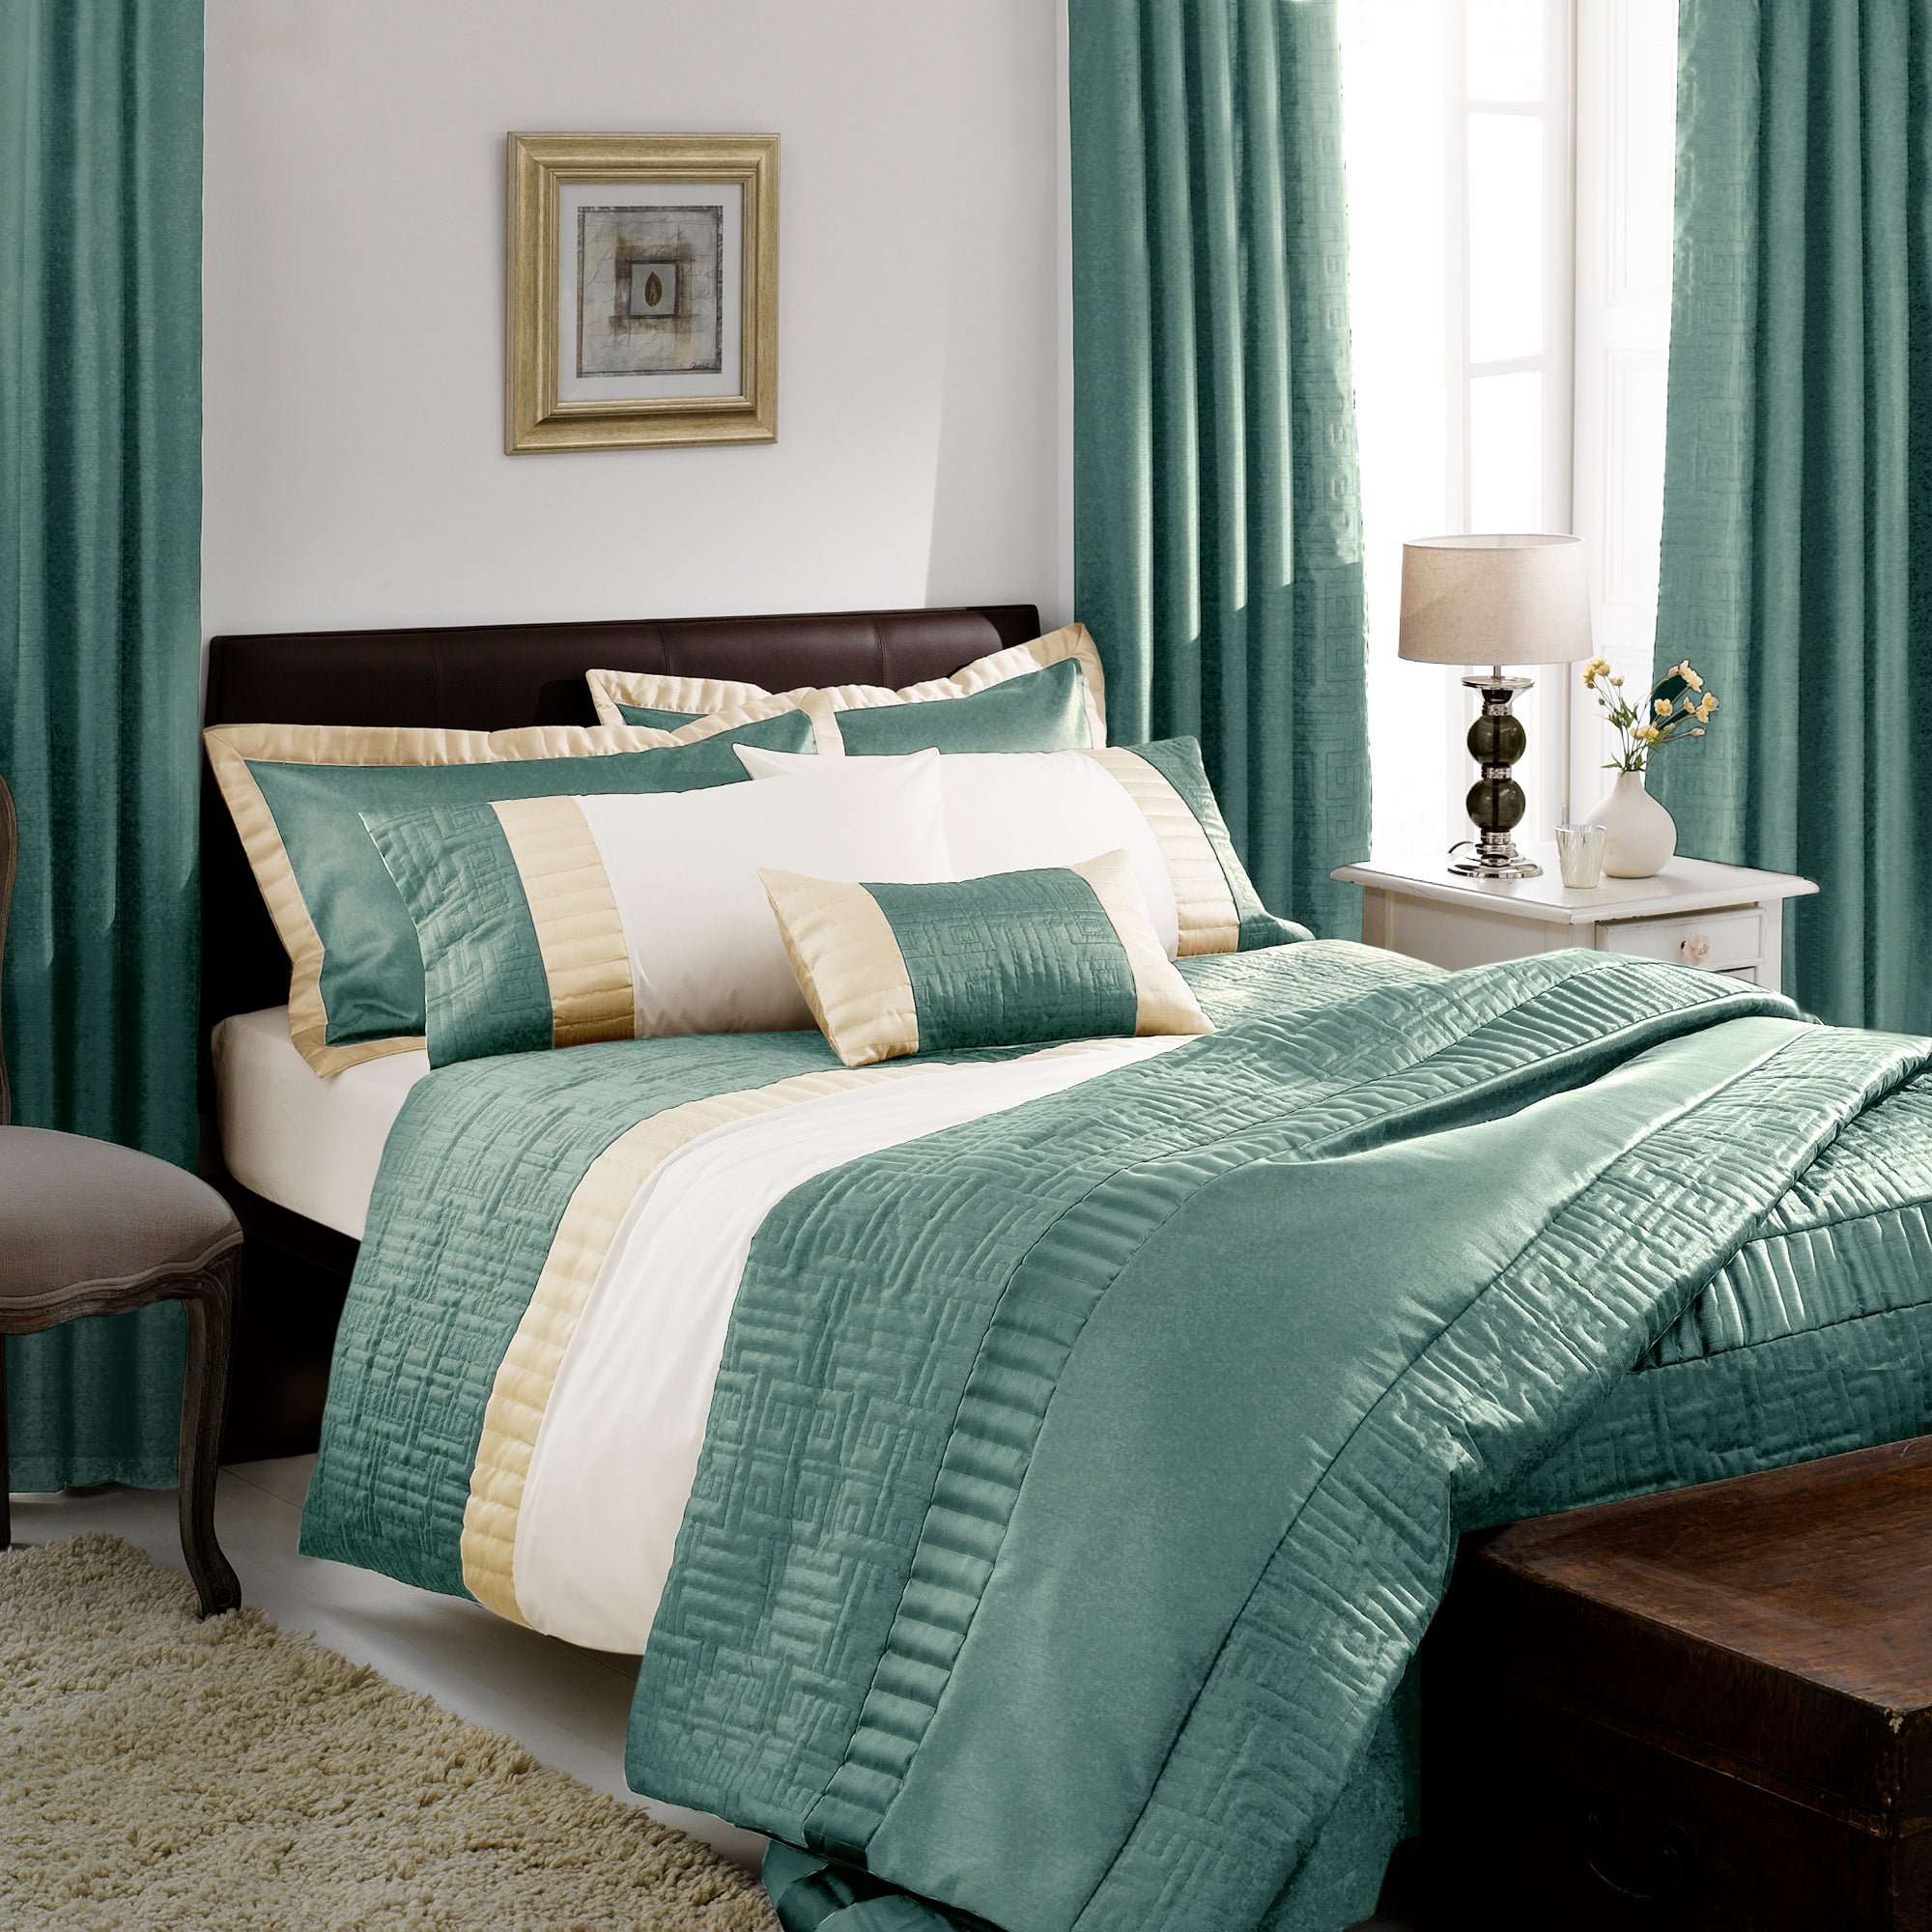 Teal Athens Collection Duvet Cover